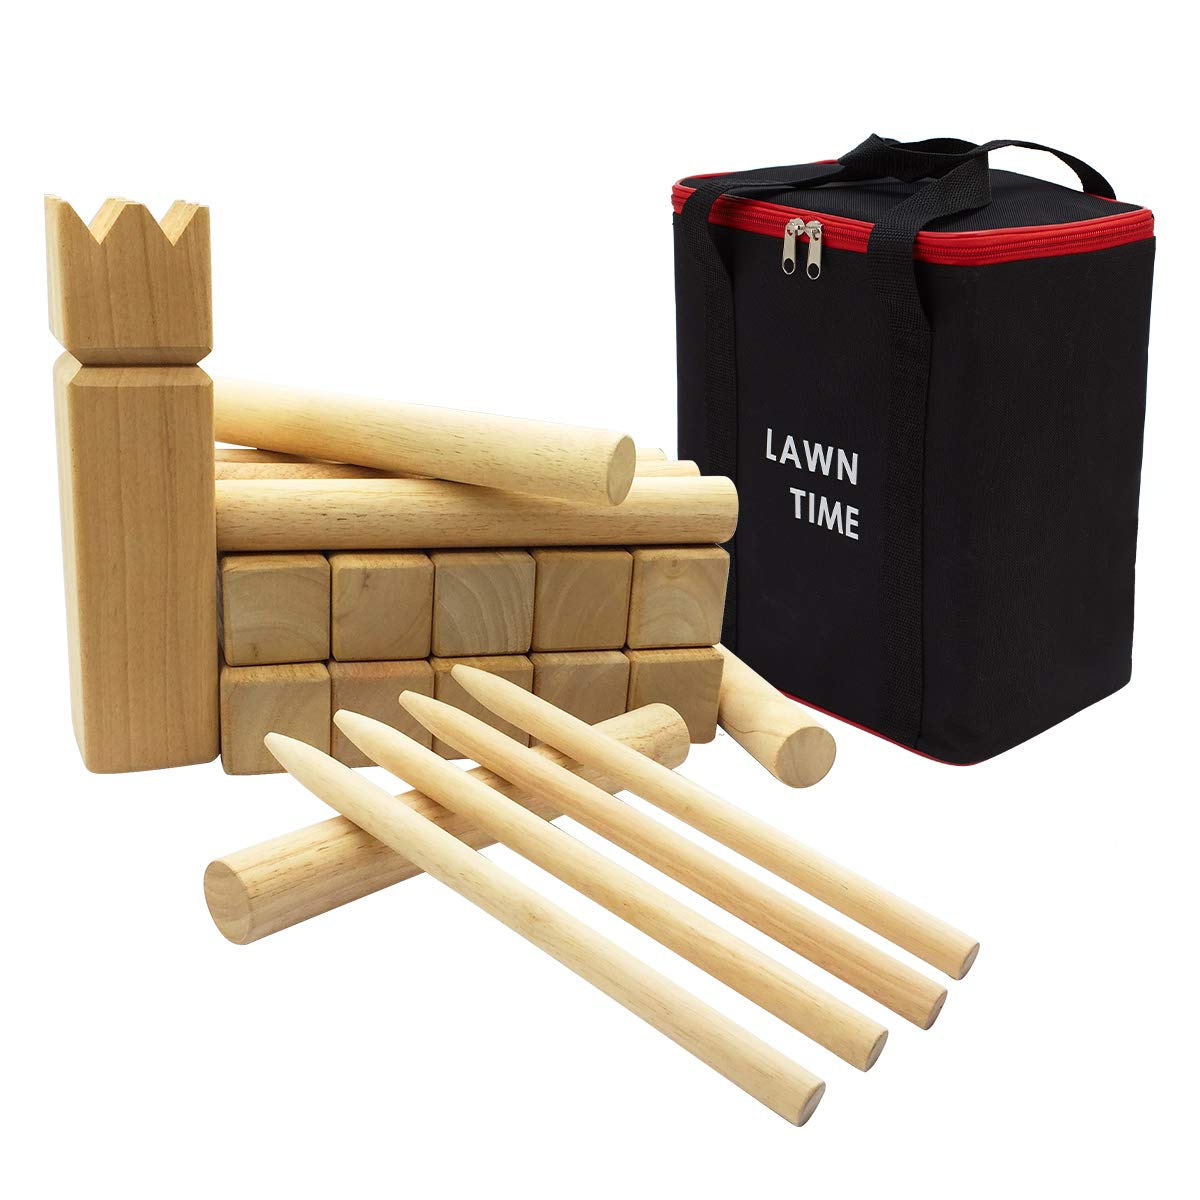 LAWN TIME Kubb Game Set - Rubberwood Viking Chess Outdoor Game - Kubb Viking Lawn Game with Carry Bag by LAWN TIME